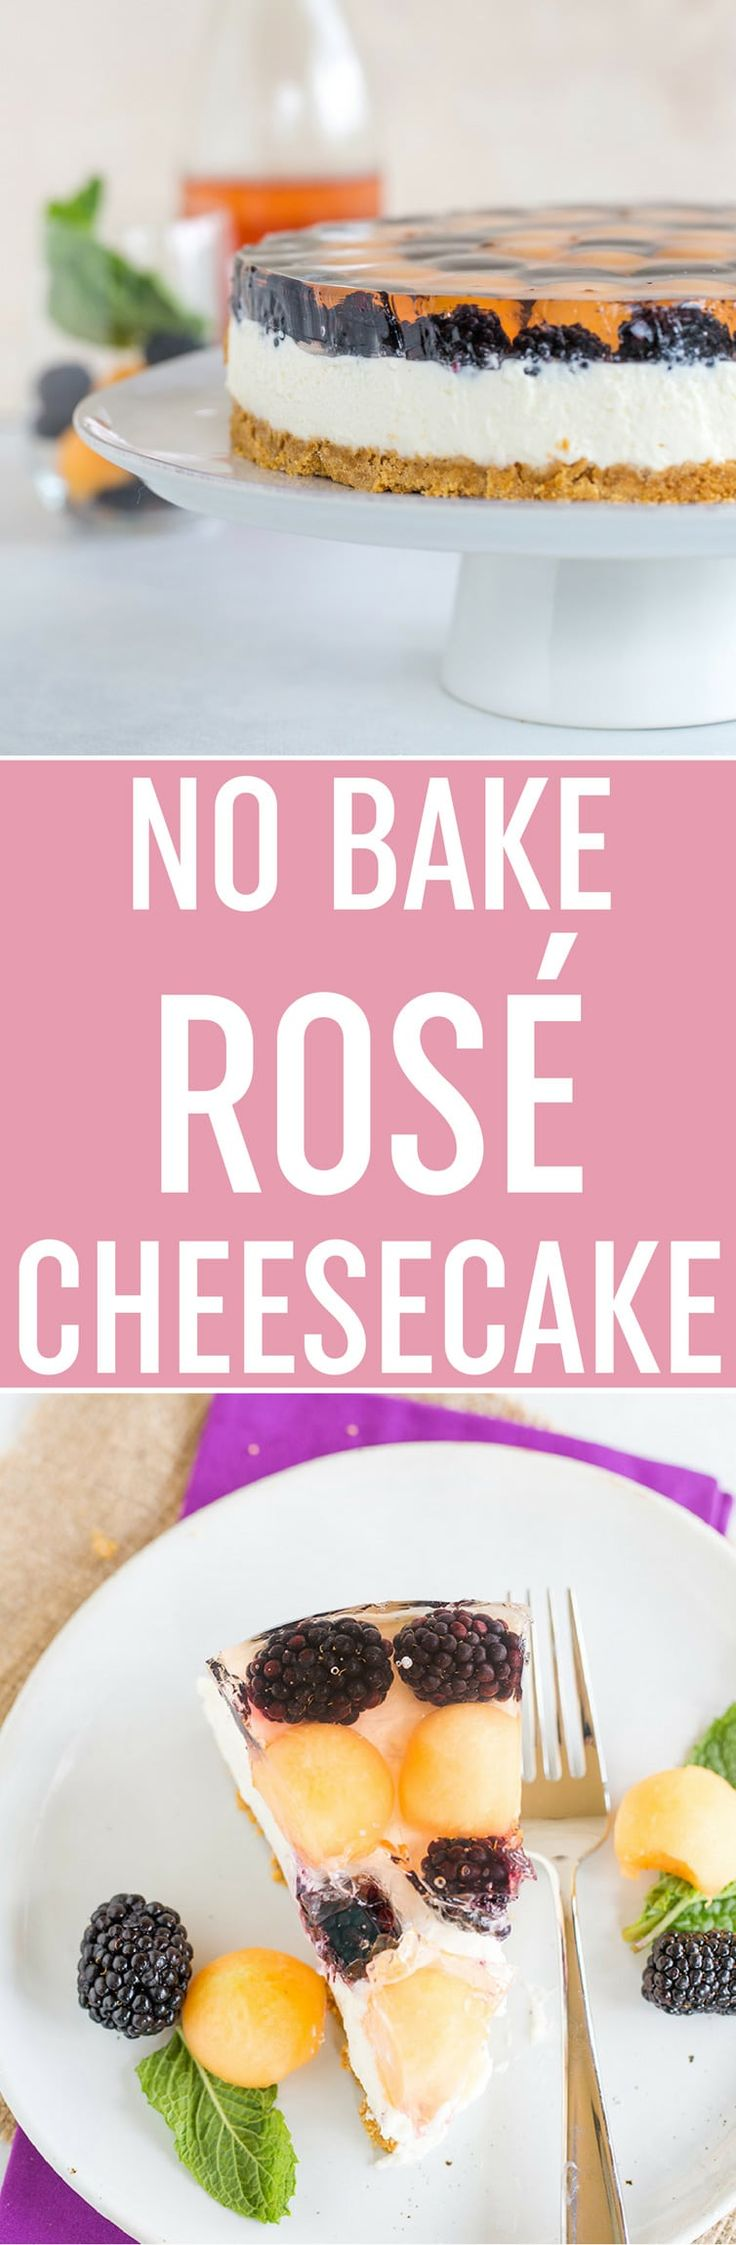 No Bake Rosé Cheesecake - A graham cracker crust with a no bake, rosé-infused cheesecake filling, topped with a cantaloupe and blackberry rosé gelatin. It's easy, summery, and a total show-stopper; a must make it for National Cheesecake Day! Sponsored by @spreadphilly. via @browneyedbaker